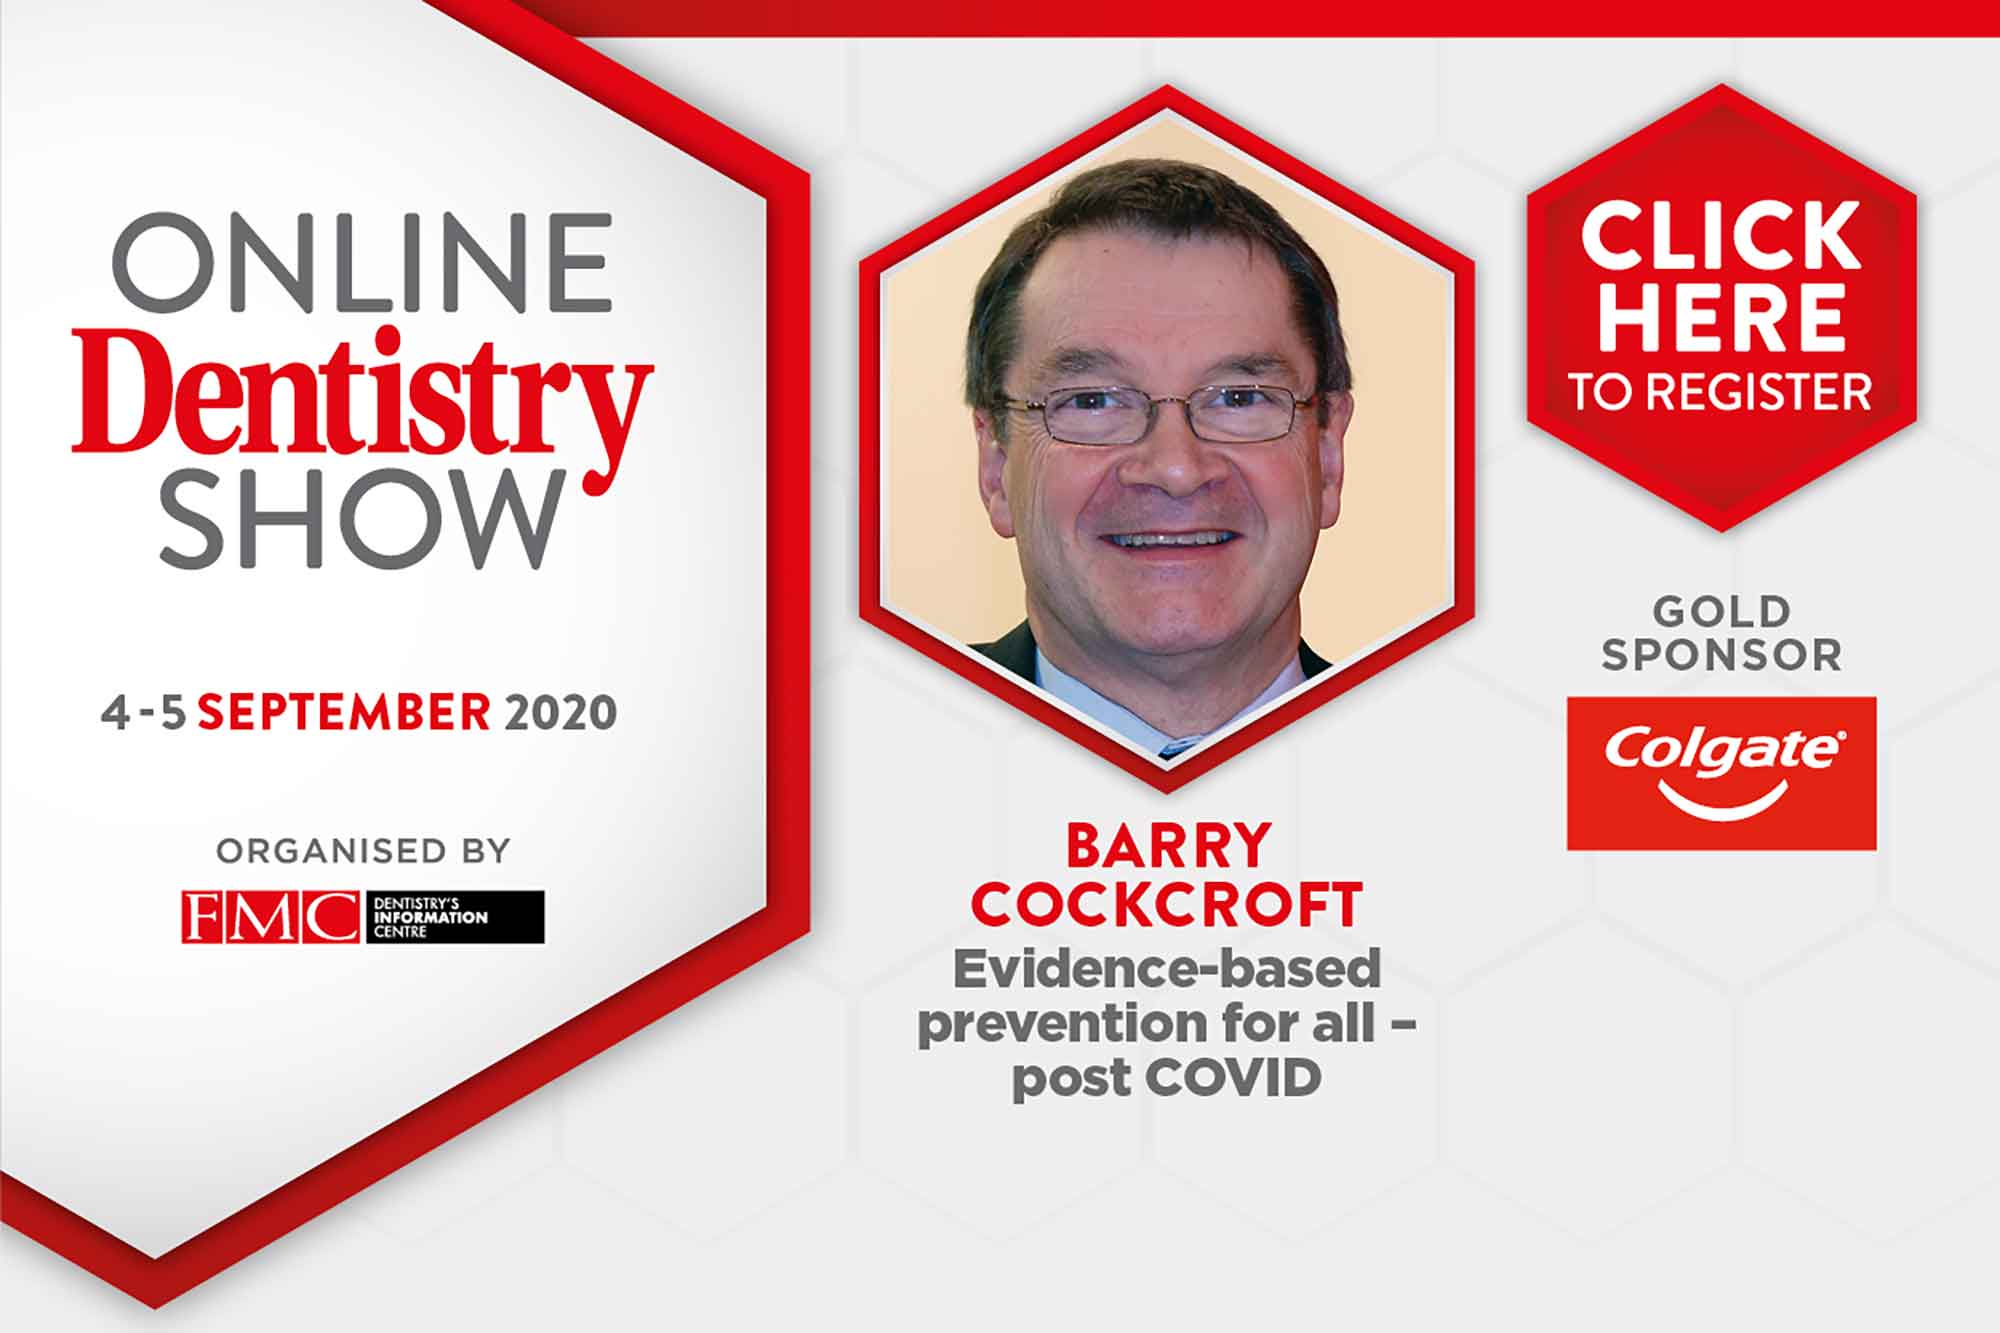 Barry Cockcroft will talk at the Online Dentistry Show